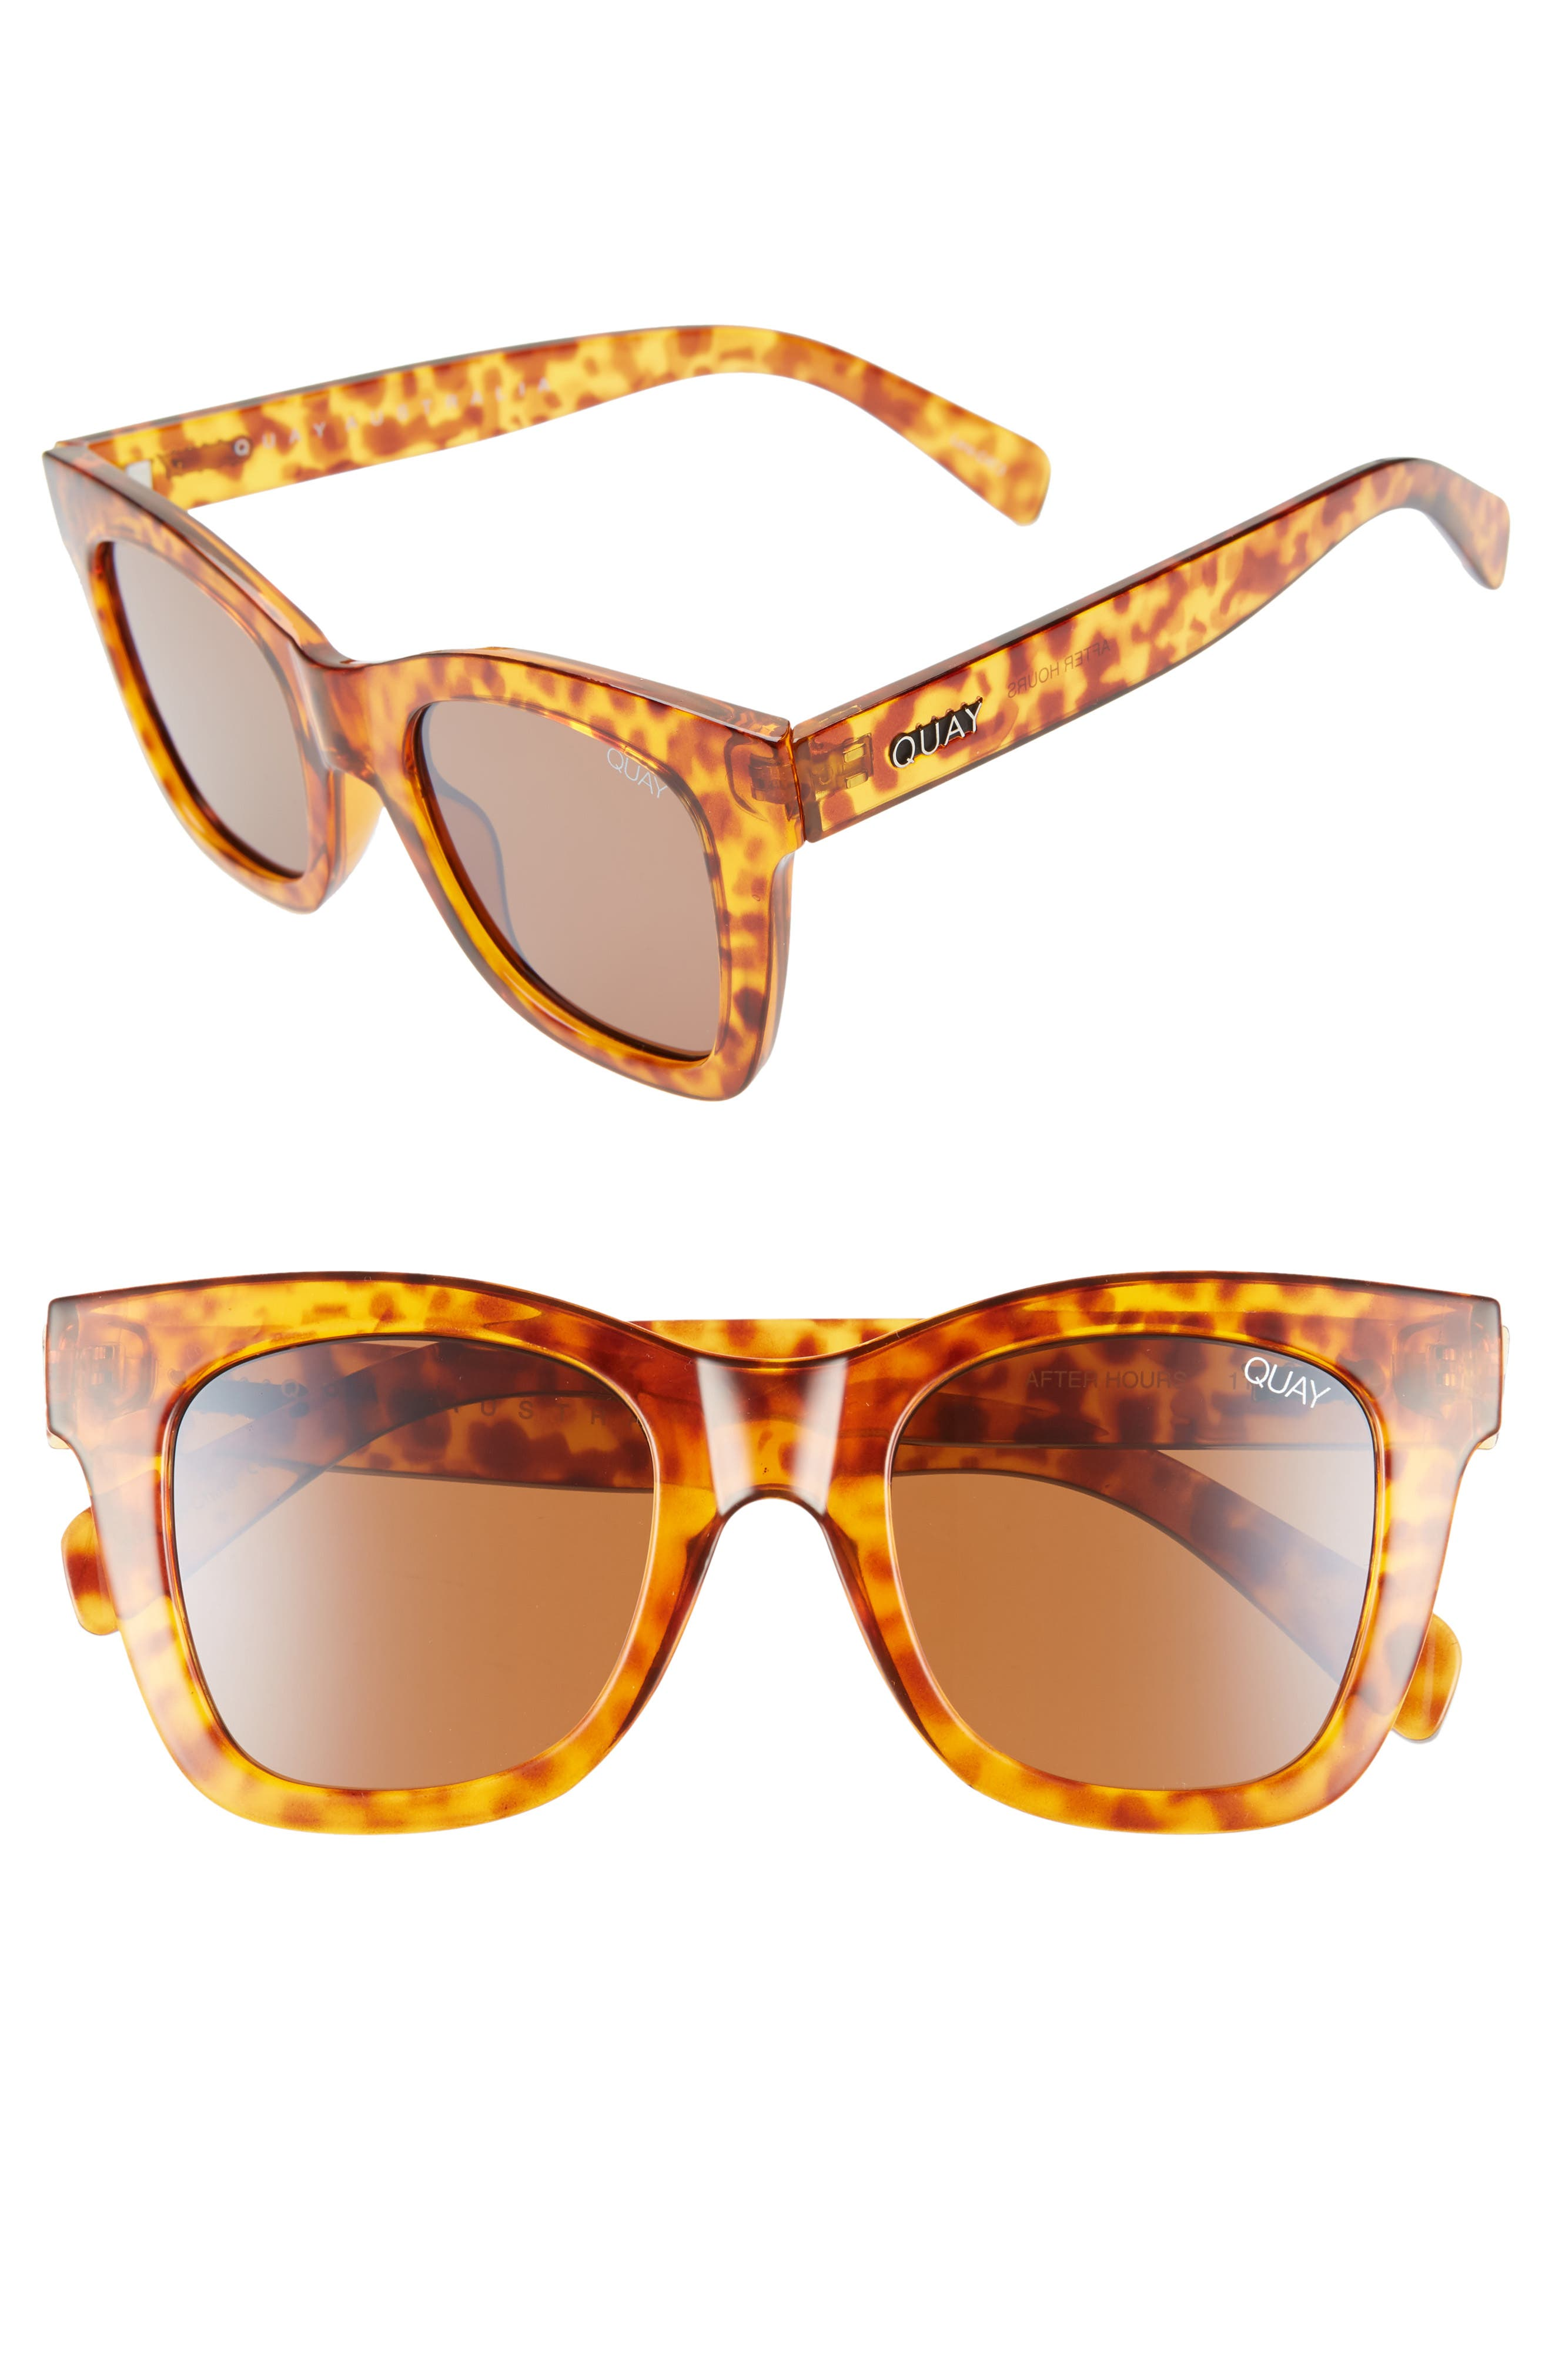 QUAY AUSTRALIA After Hours 50mm Square Sunglasses, Main, color, ORANGE TORT / BROWN